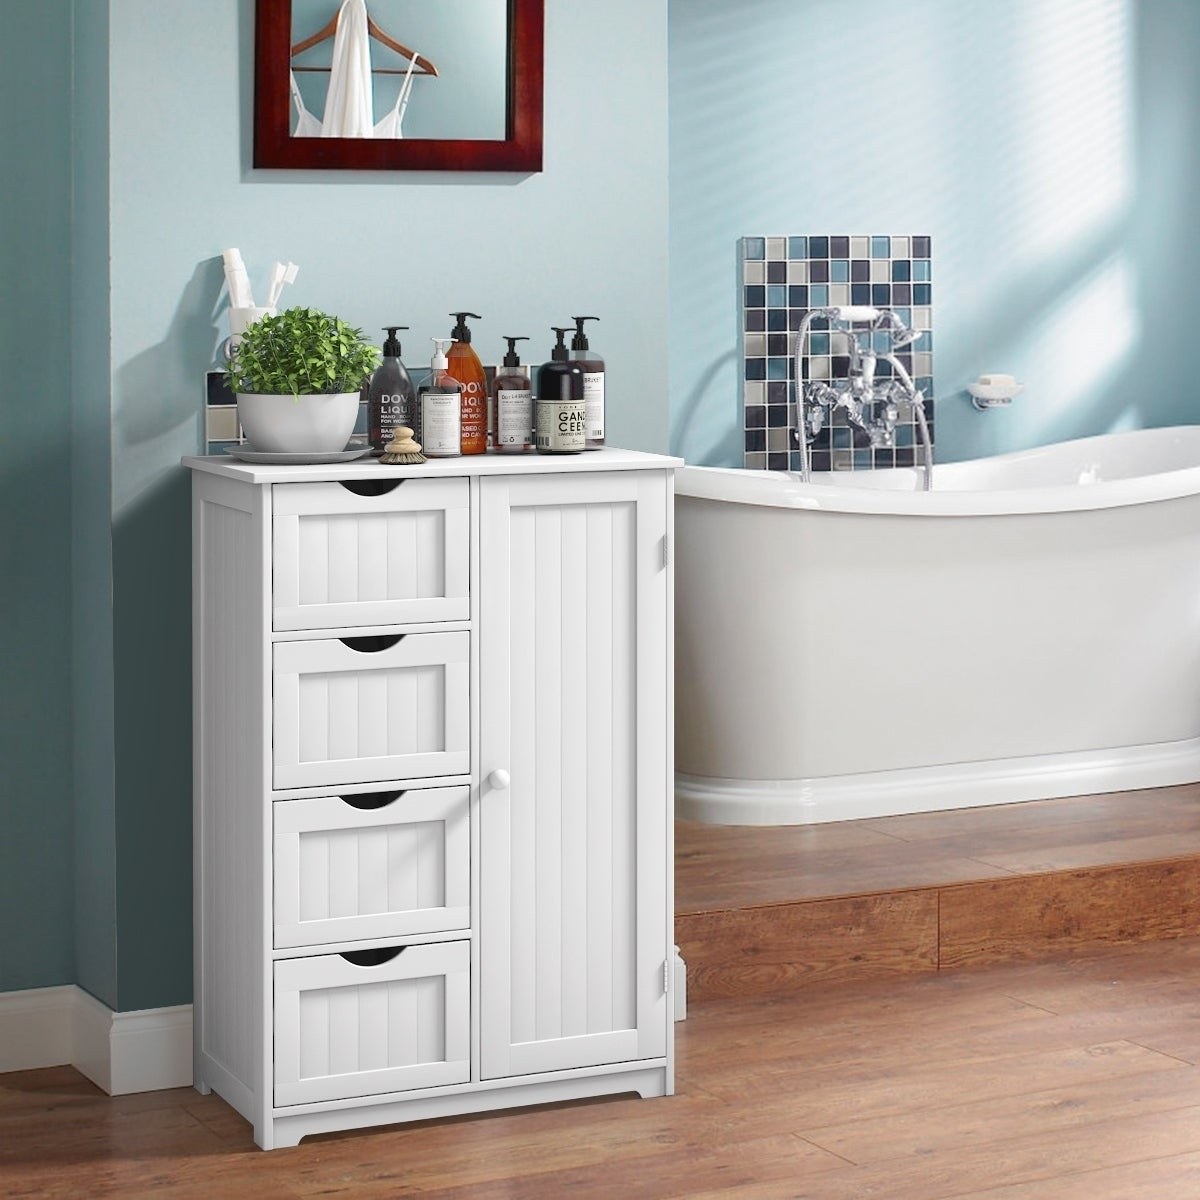 4 Drawer White Wooden Bathroom Cabinet Free Standing Cupboard Overstock 30617900